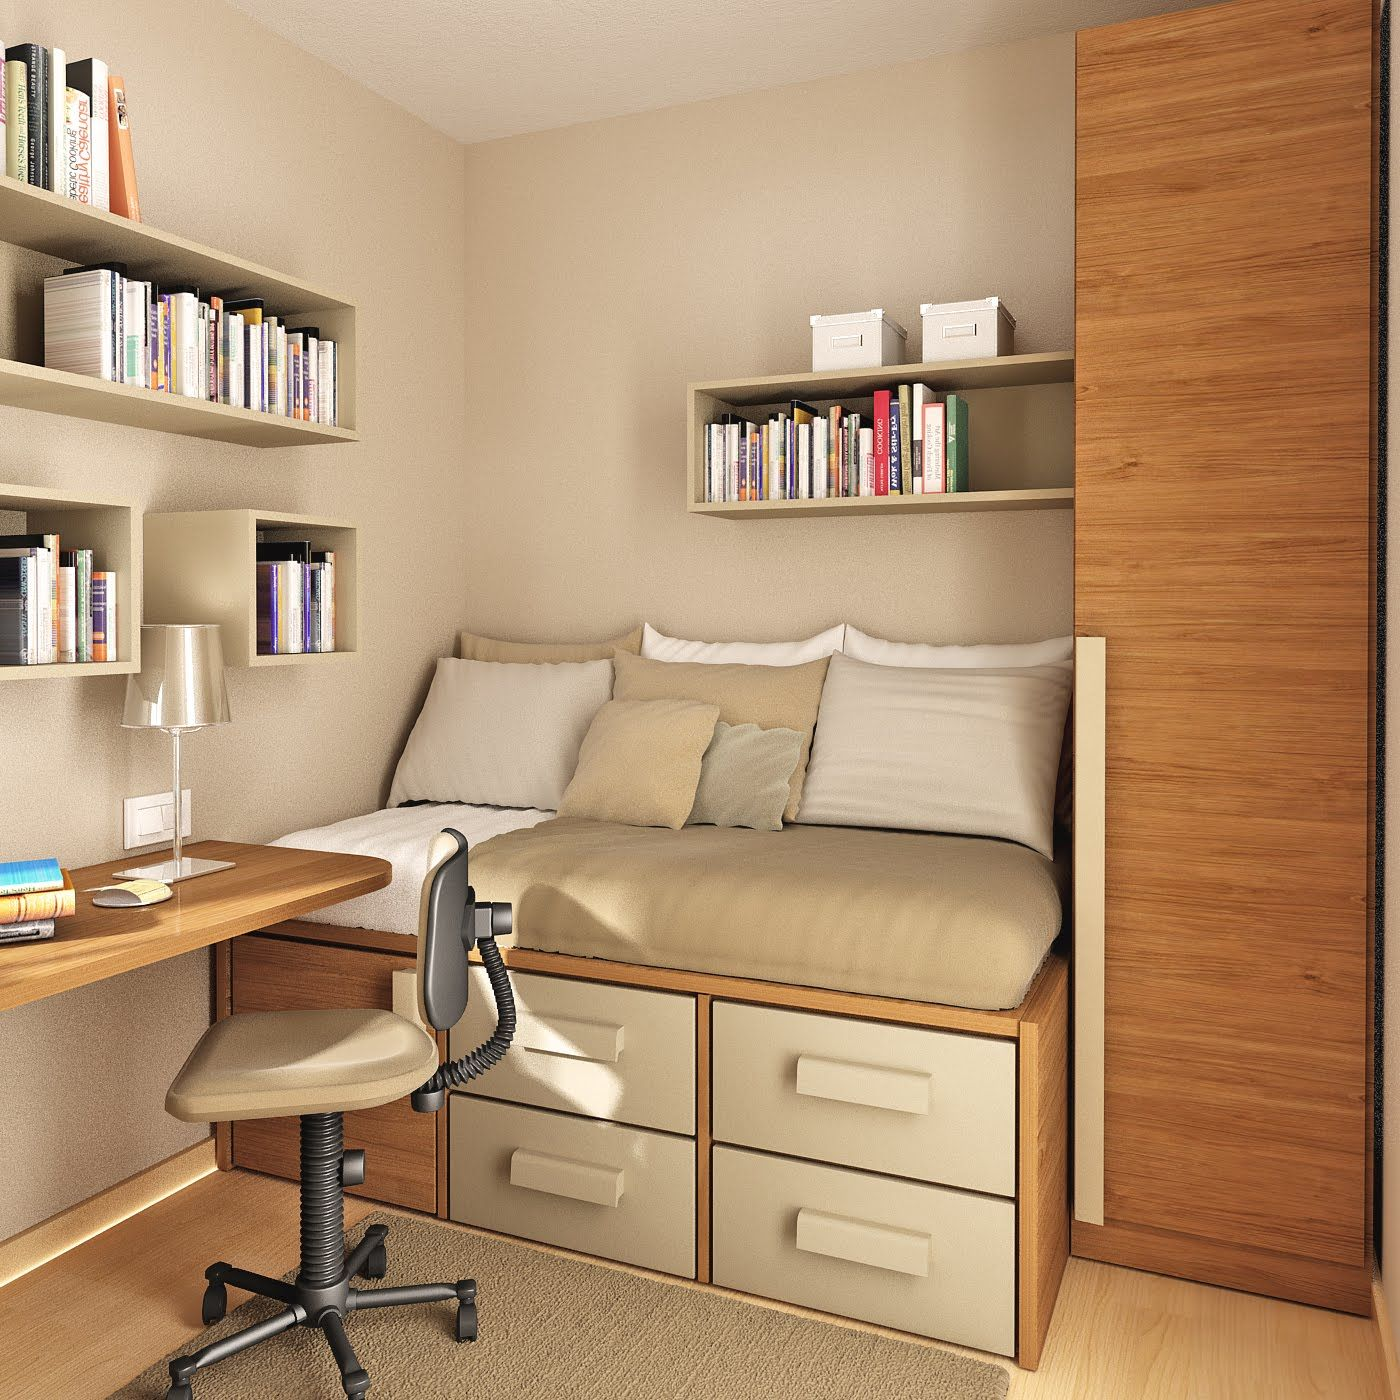 Decoration Decorating A Small Study Room In Your Home Awesome Interior Ideas Trendy Wall Mount Book Shelves Over Mounted Study Desk Feat Sleeper Storage